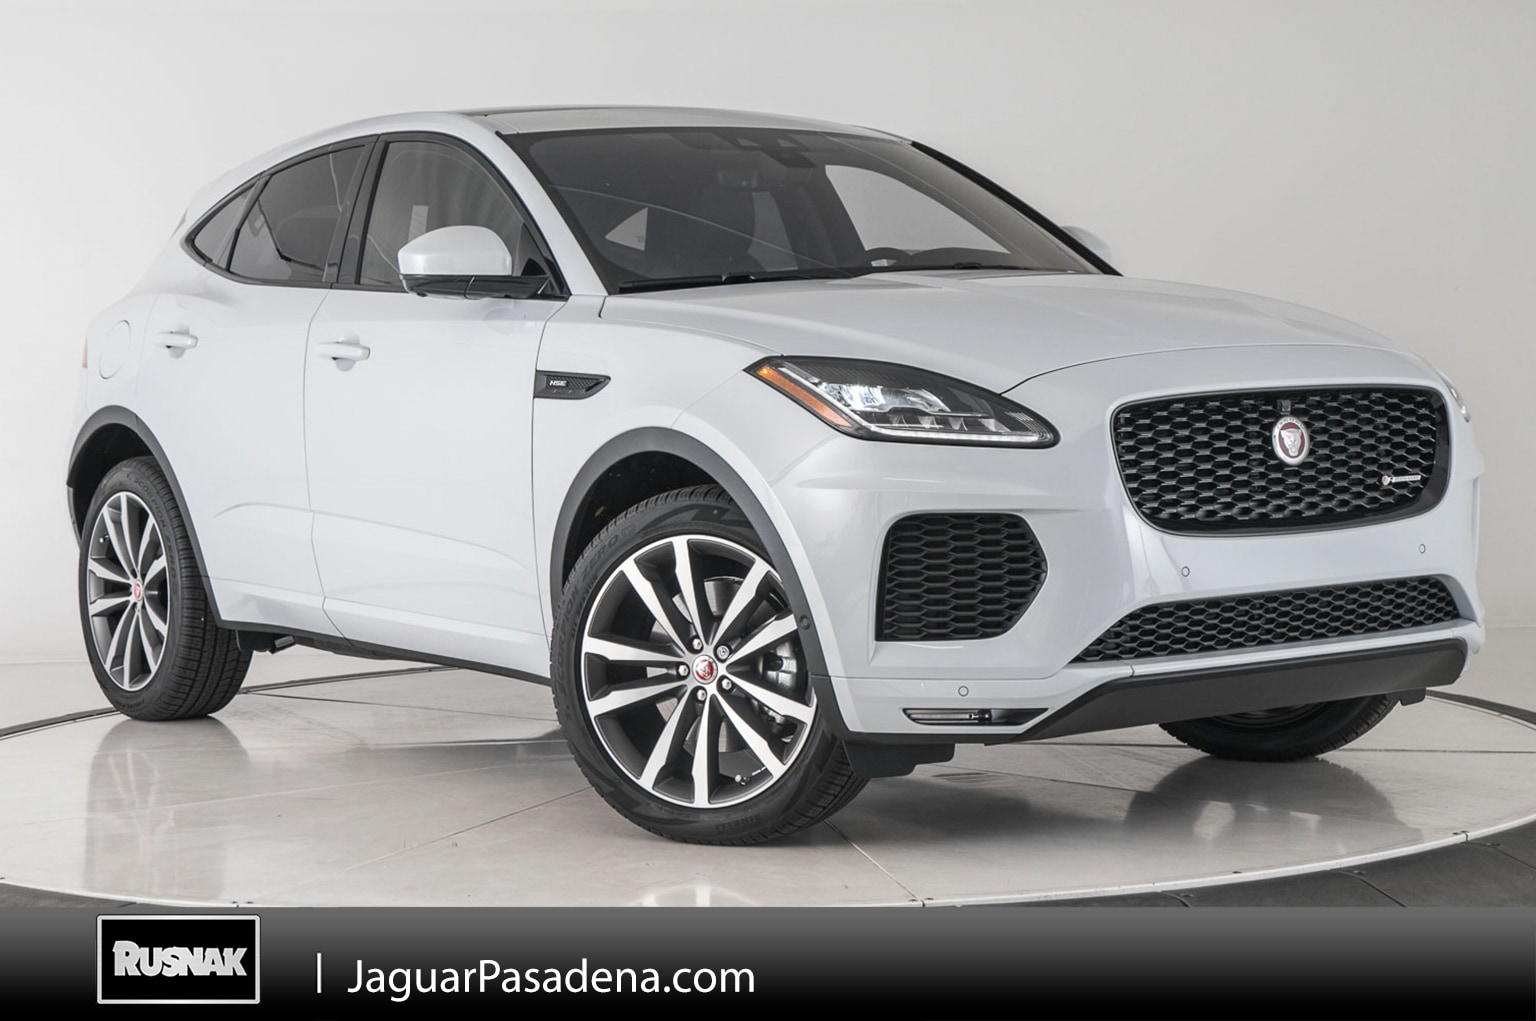 New 2019 Jaguar E-PACE HSE SUV For Sale Los Angeles California